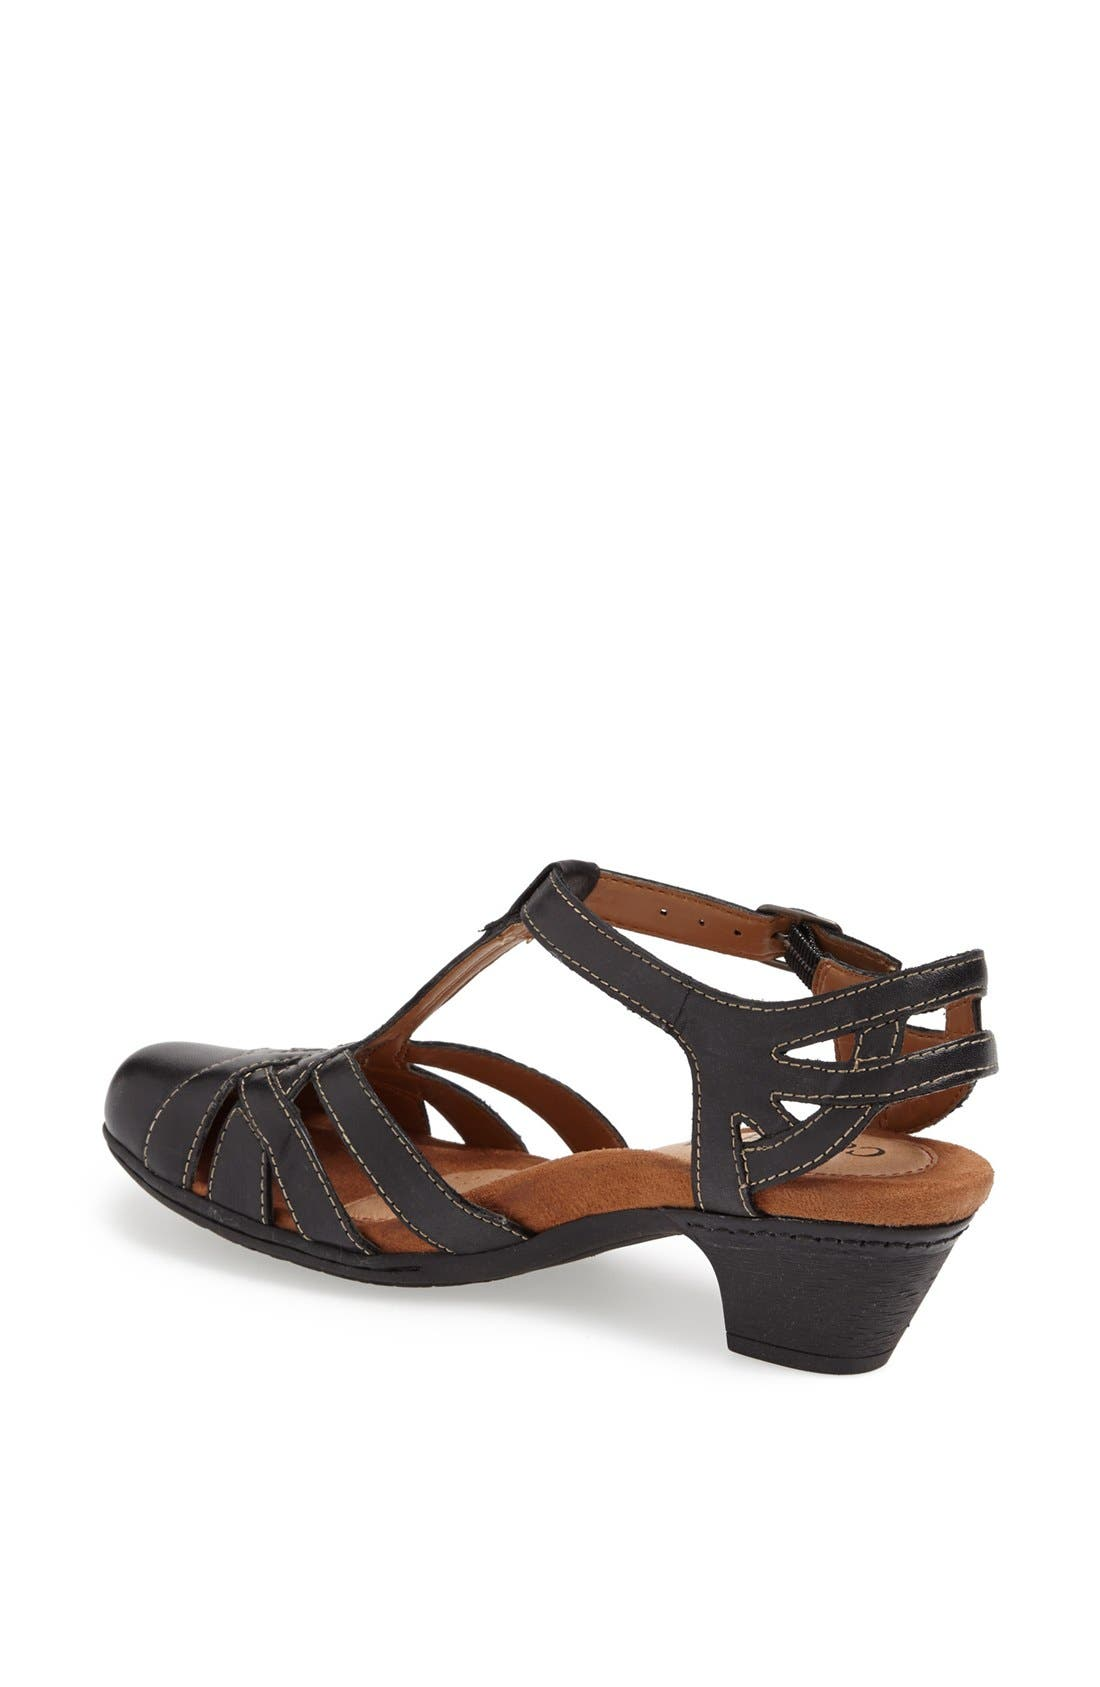 'Aubrey' Sandal,                             Alternate thumbnail 35, color,